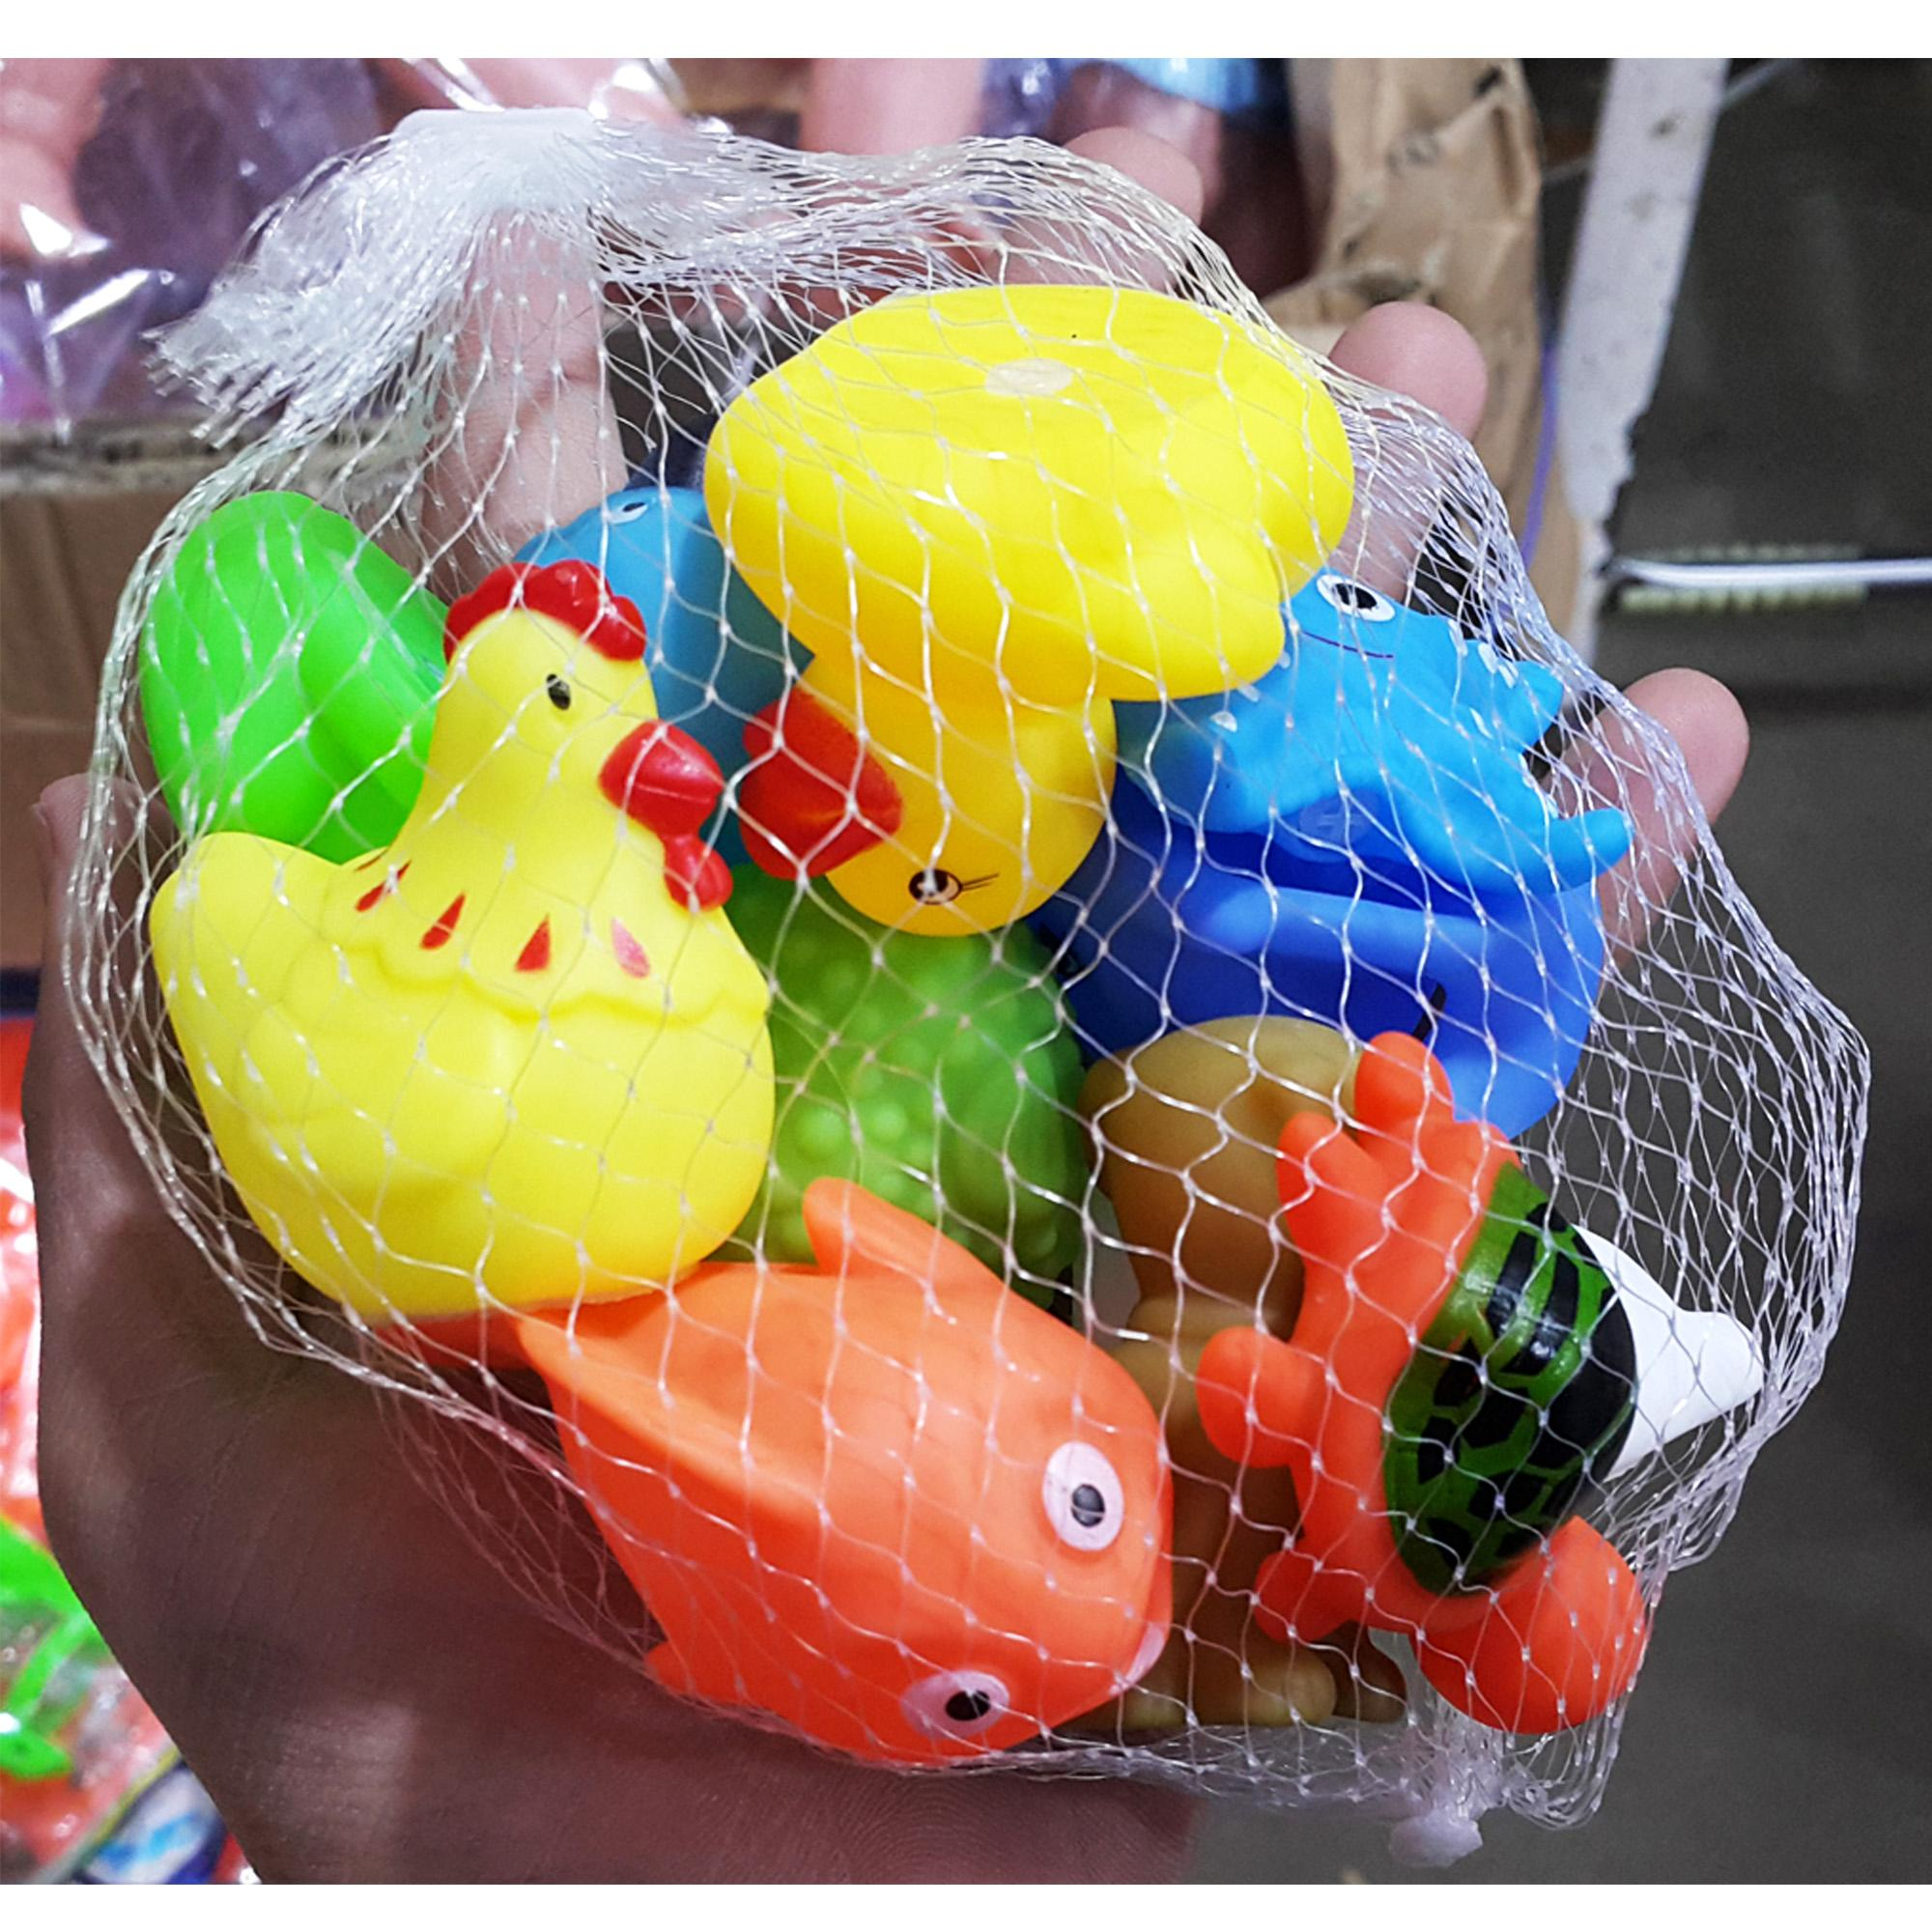 Cute Squishy Whistle Pet / Soft Animals Rattle Packed In A Net - SR